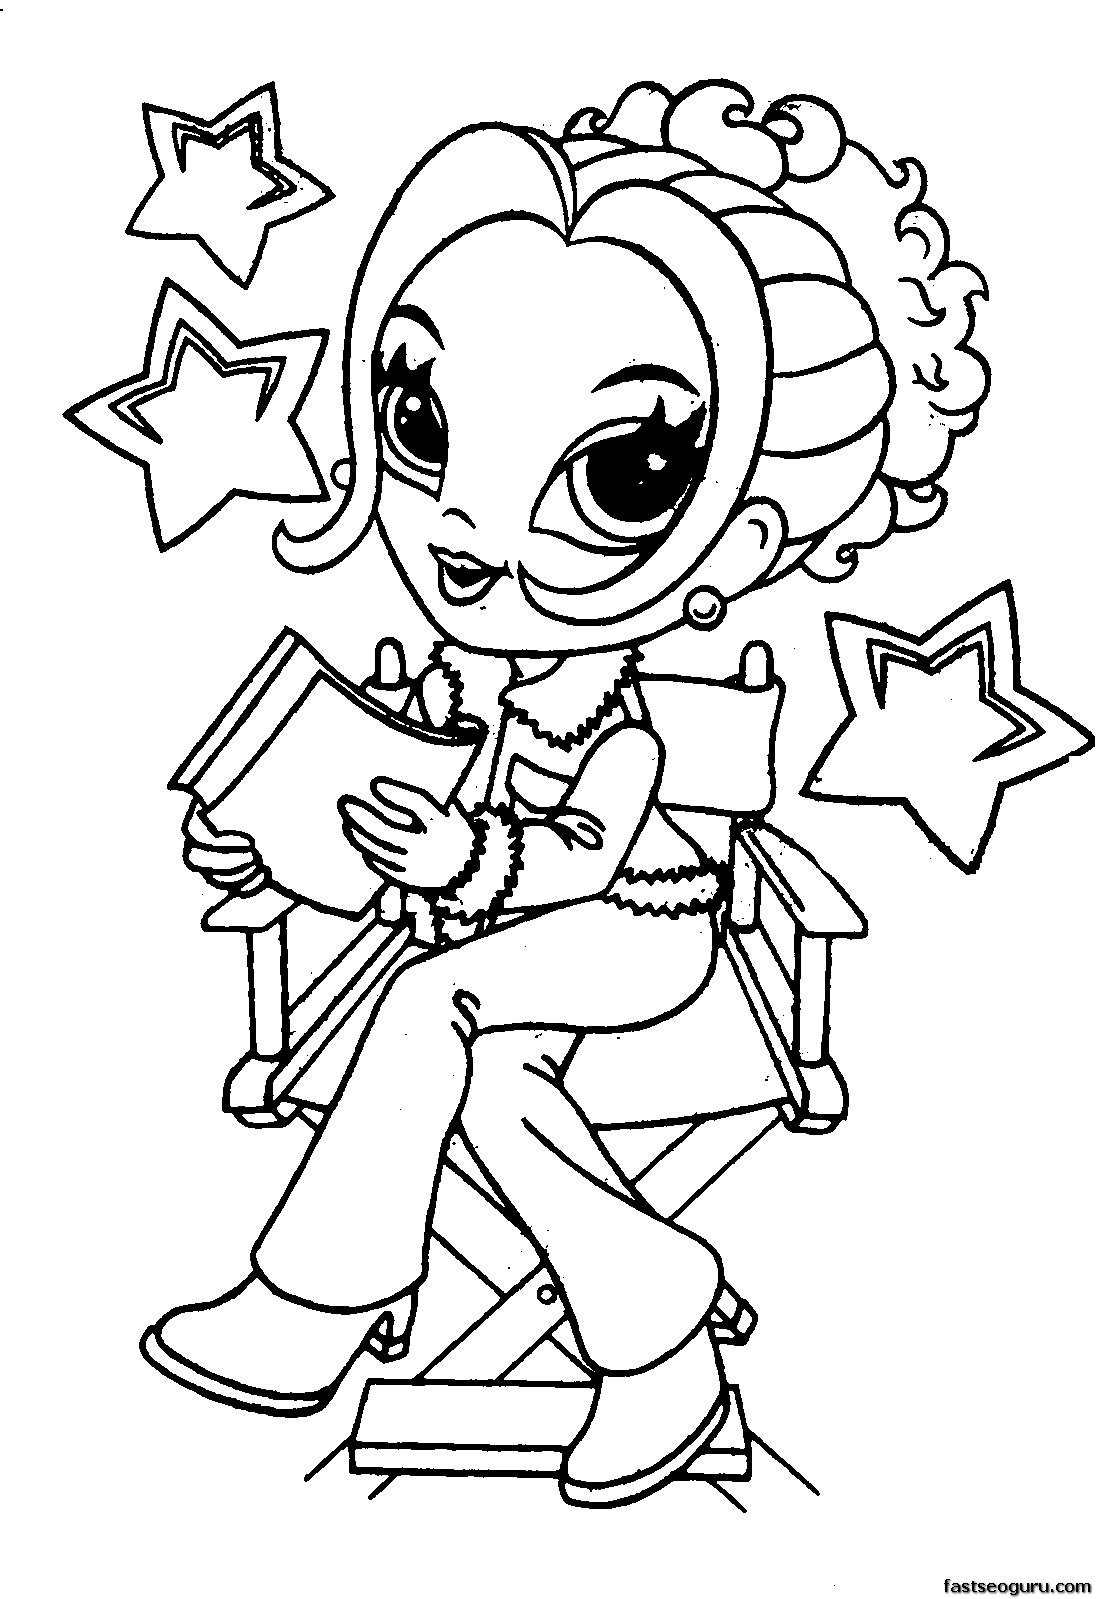 Printable Coloring Websites : Cute girl coloring pages to download and print for free